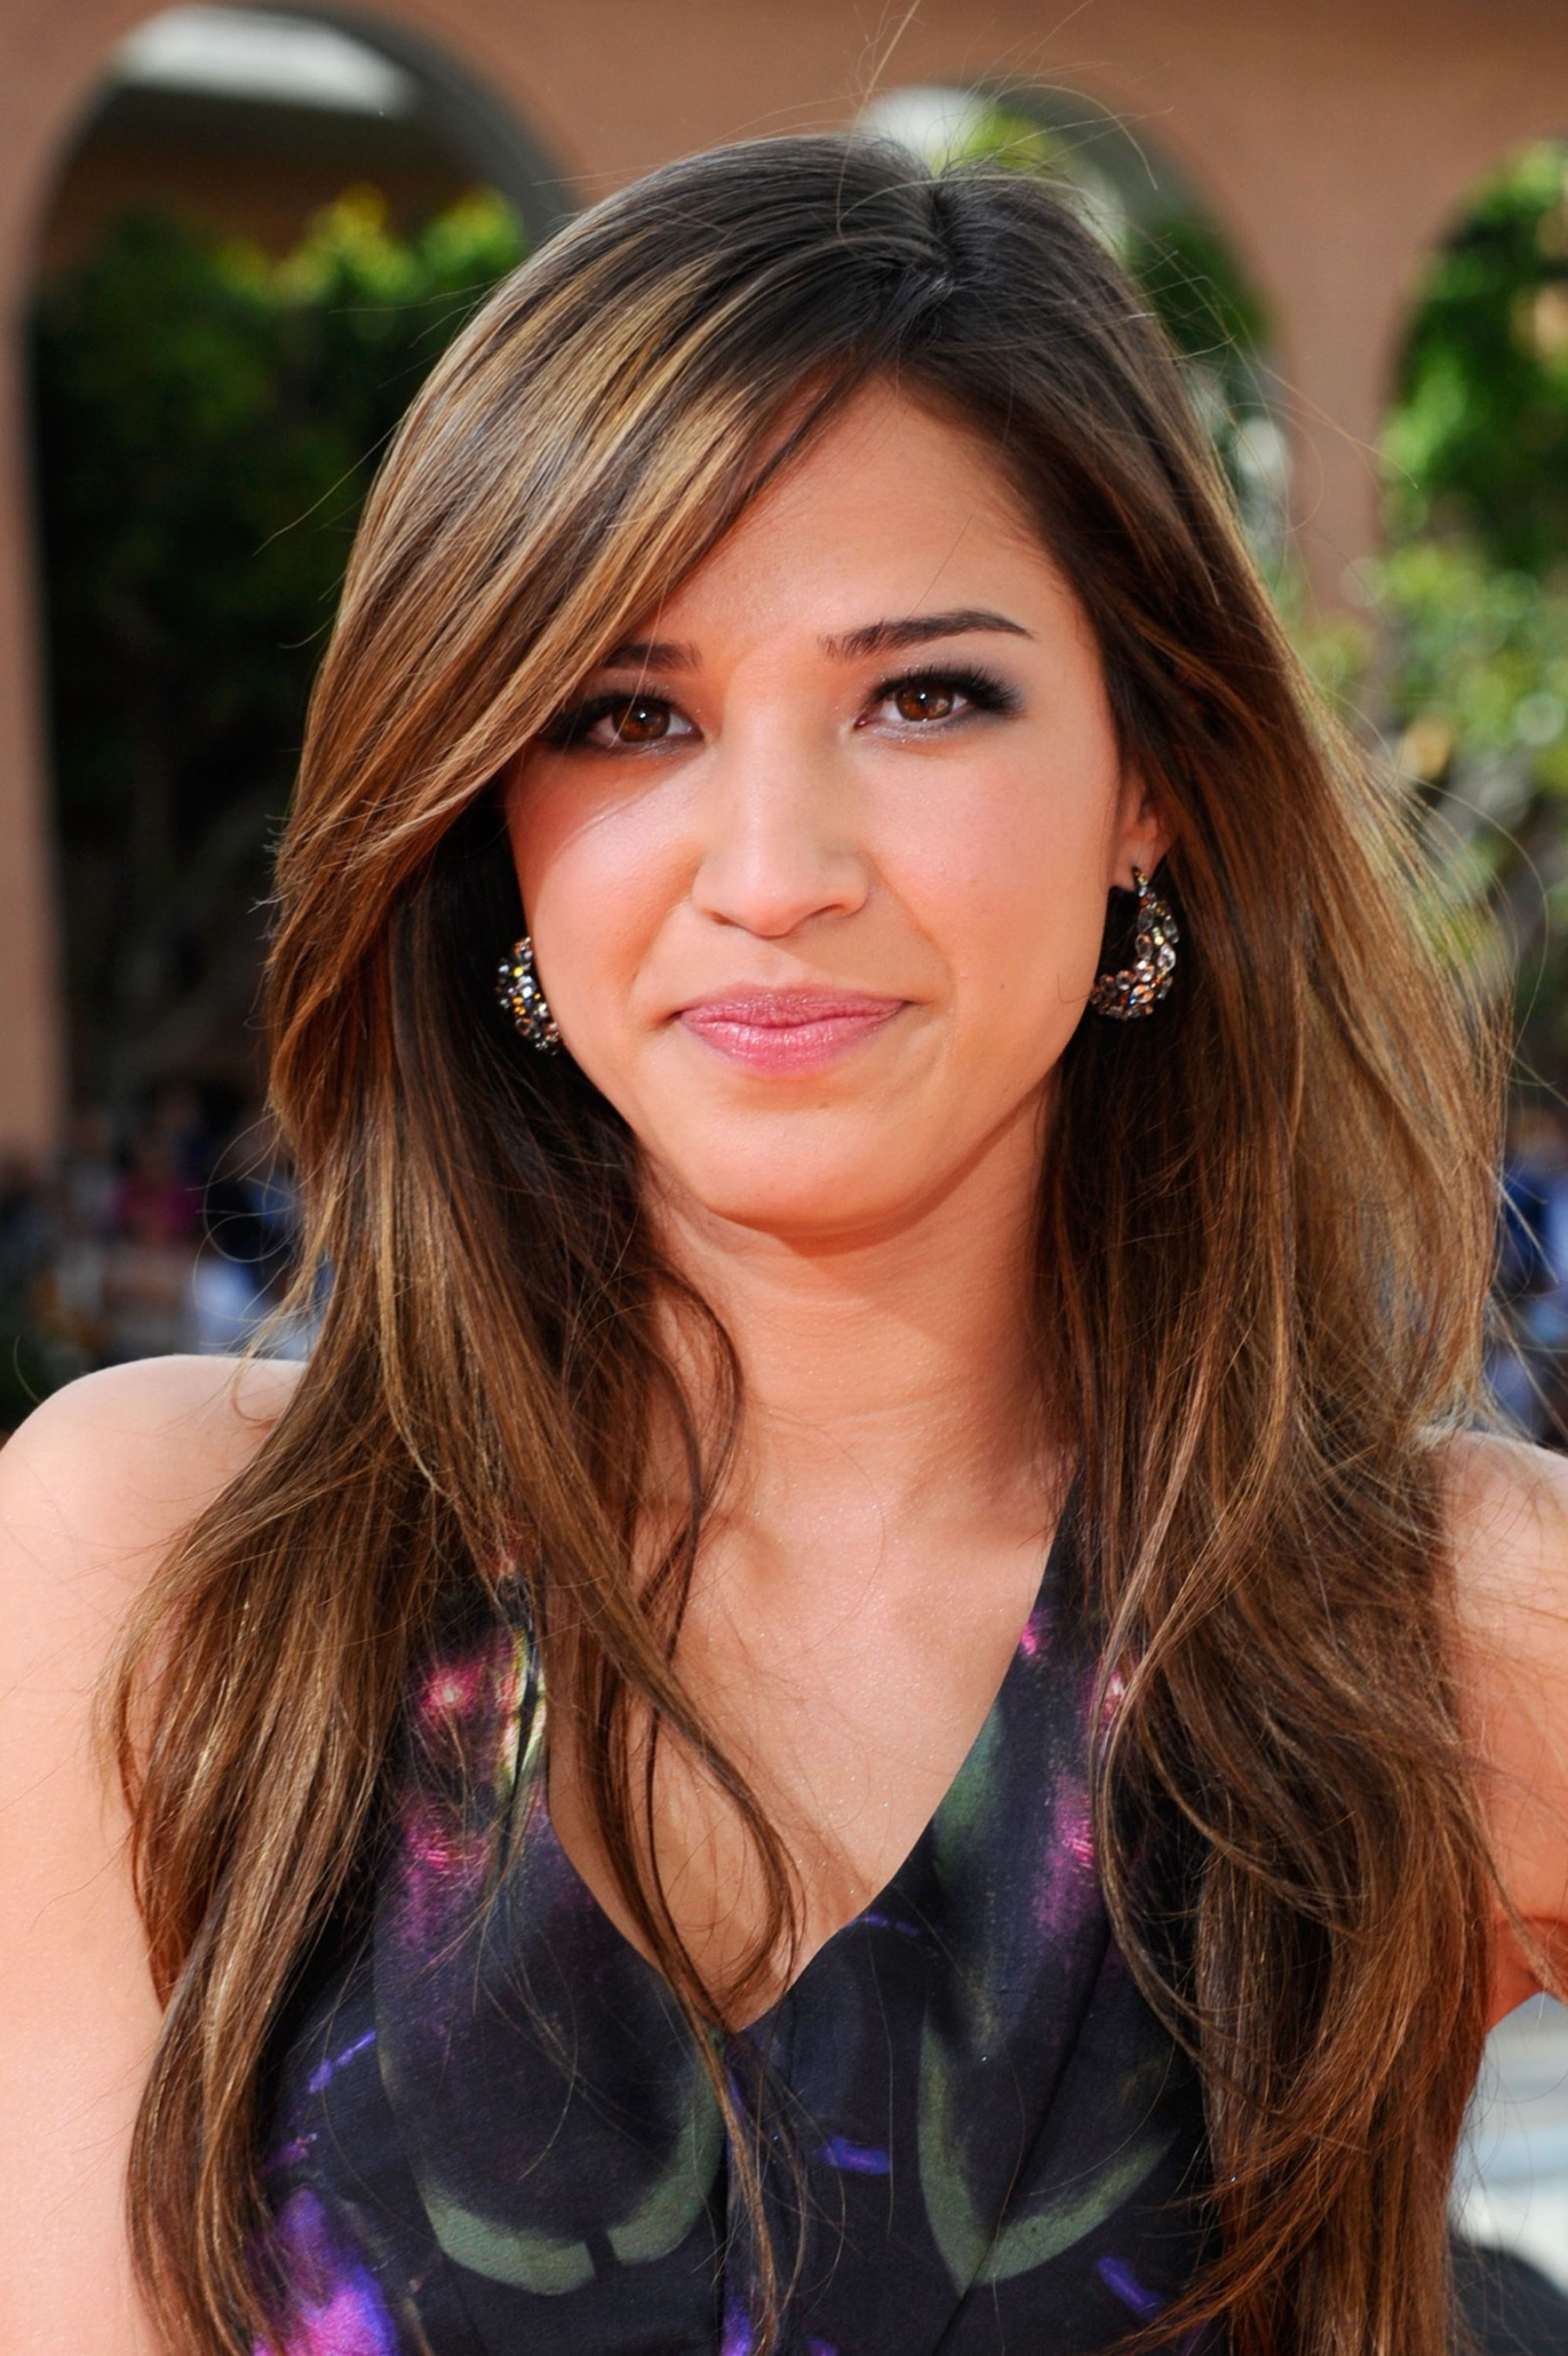 Pictures Of Kelsey Chow Pictures Of Celebrities